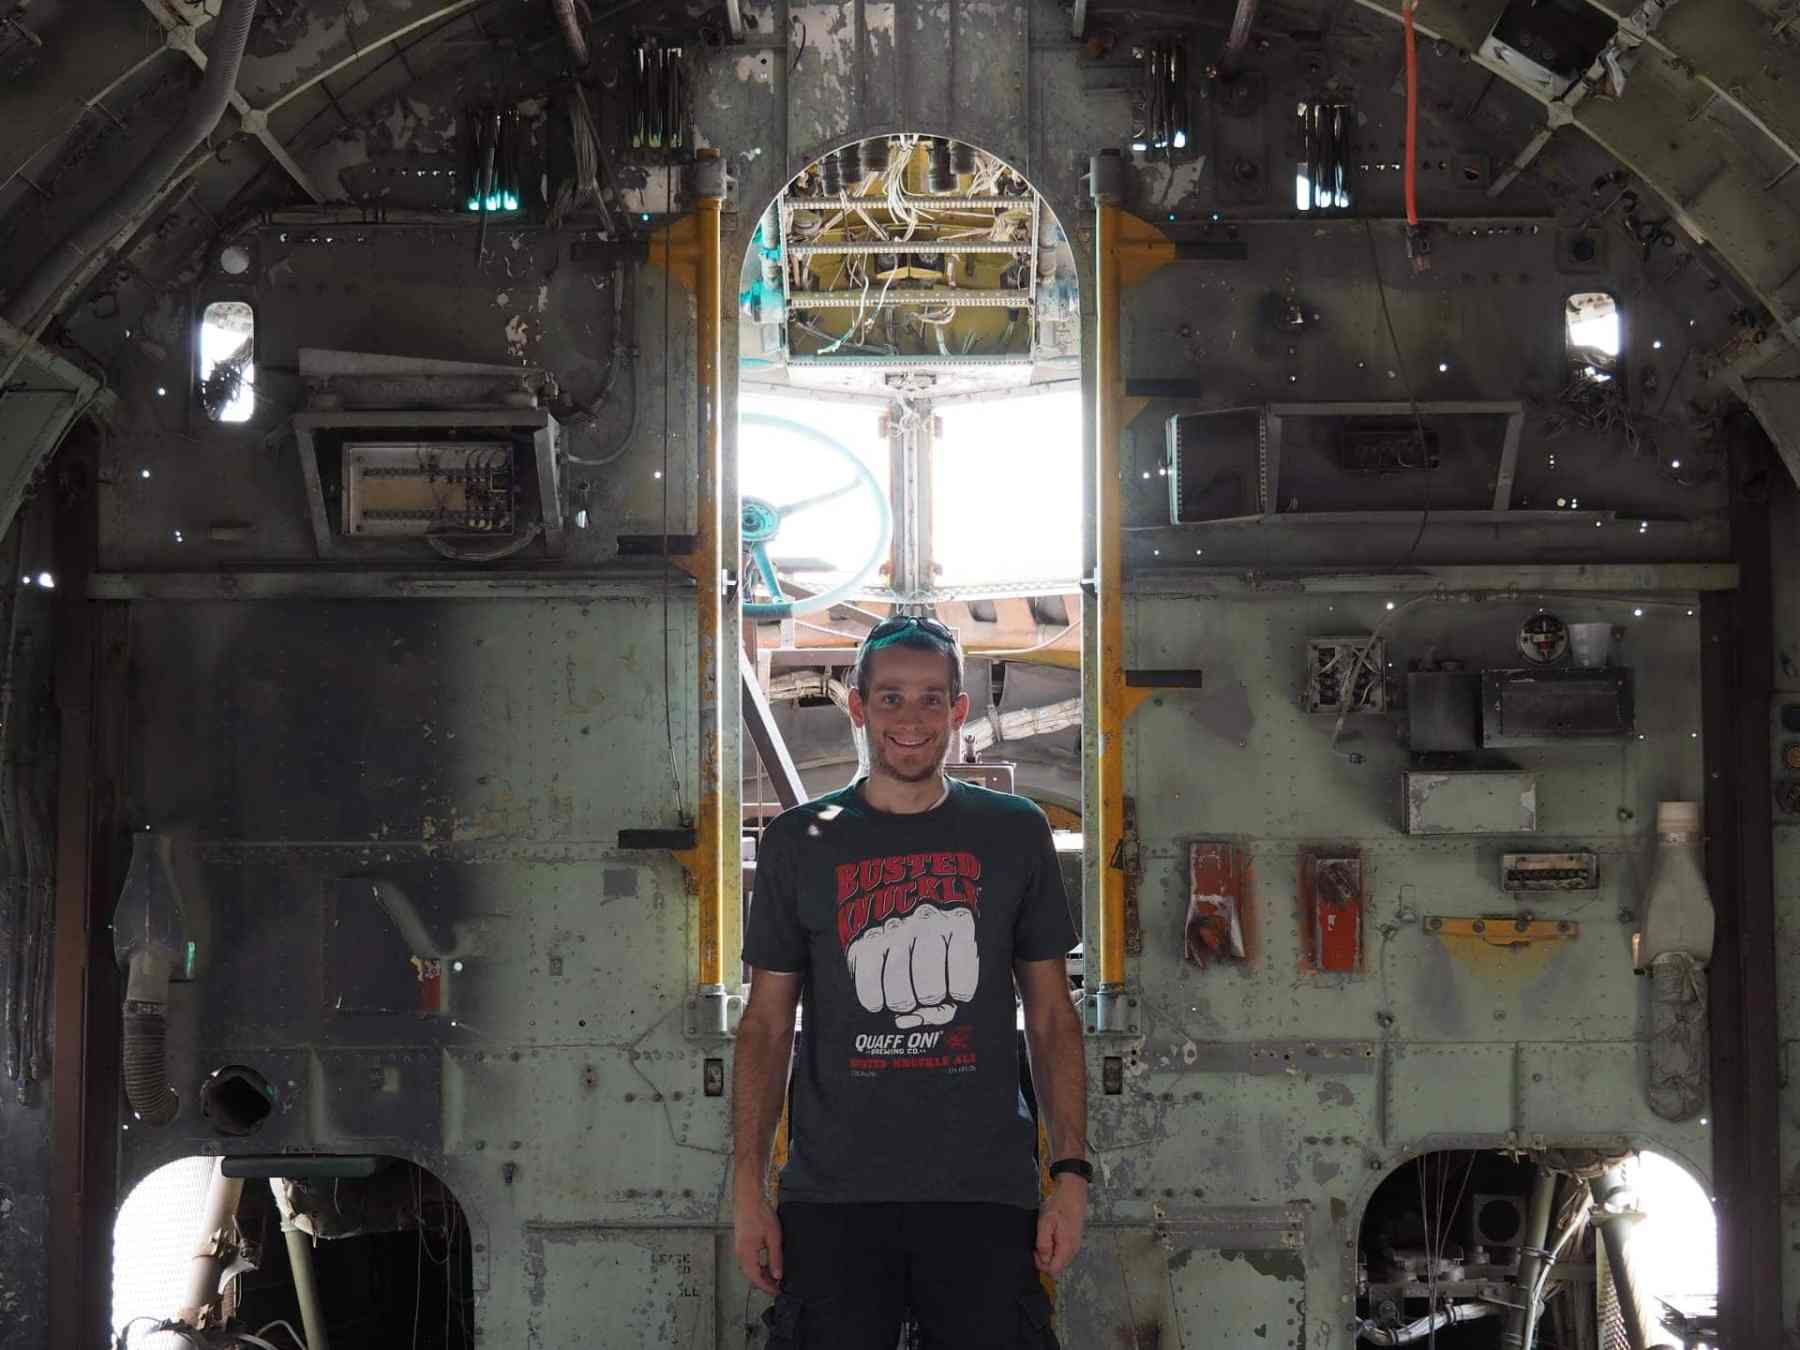 inside the gutted plane